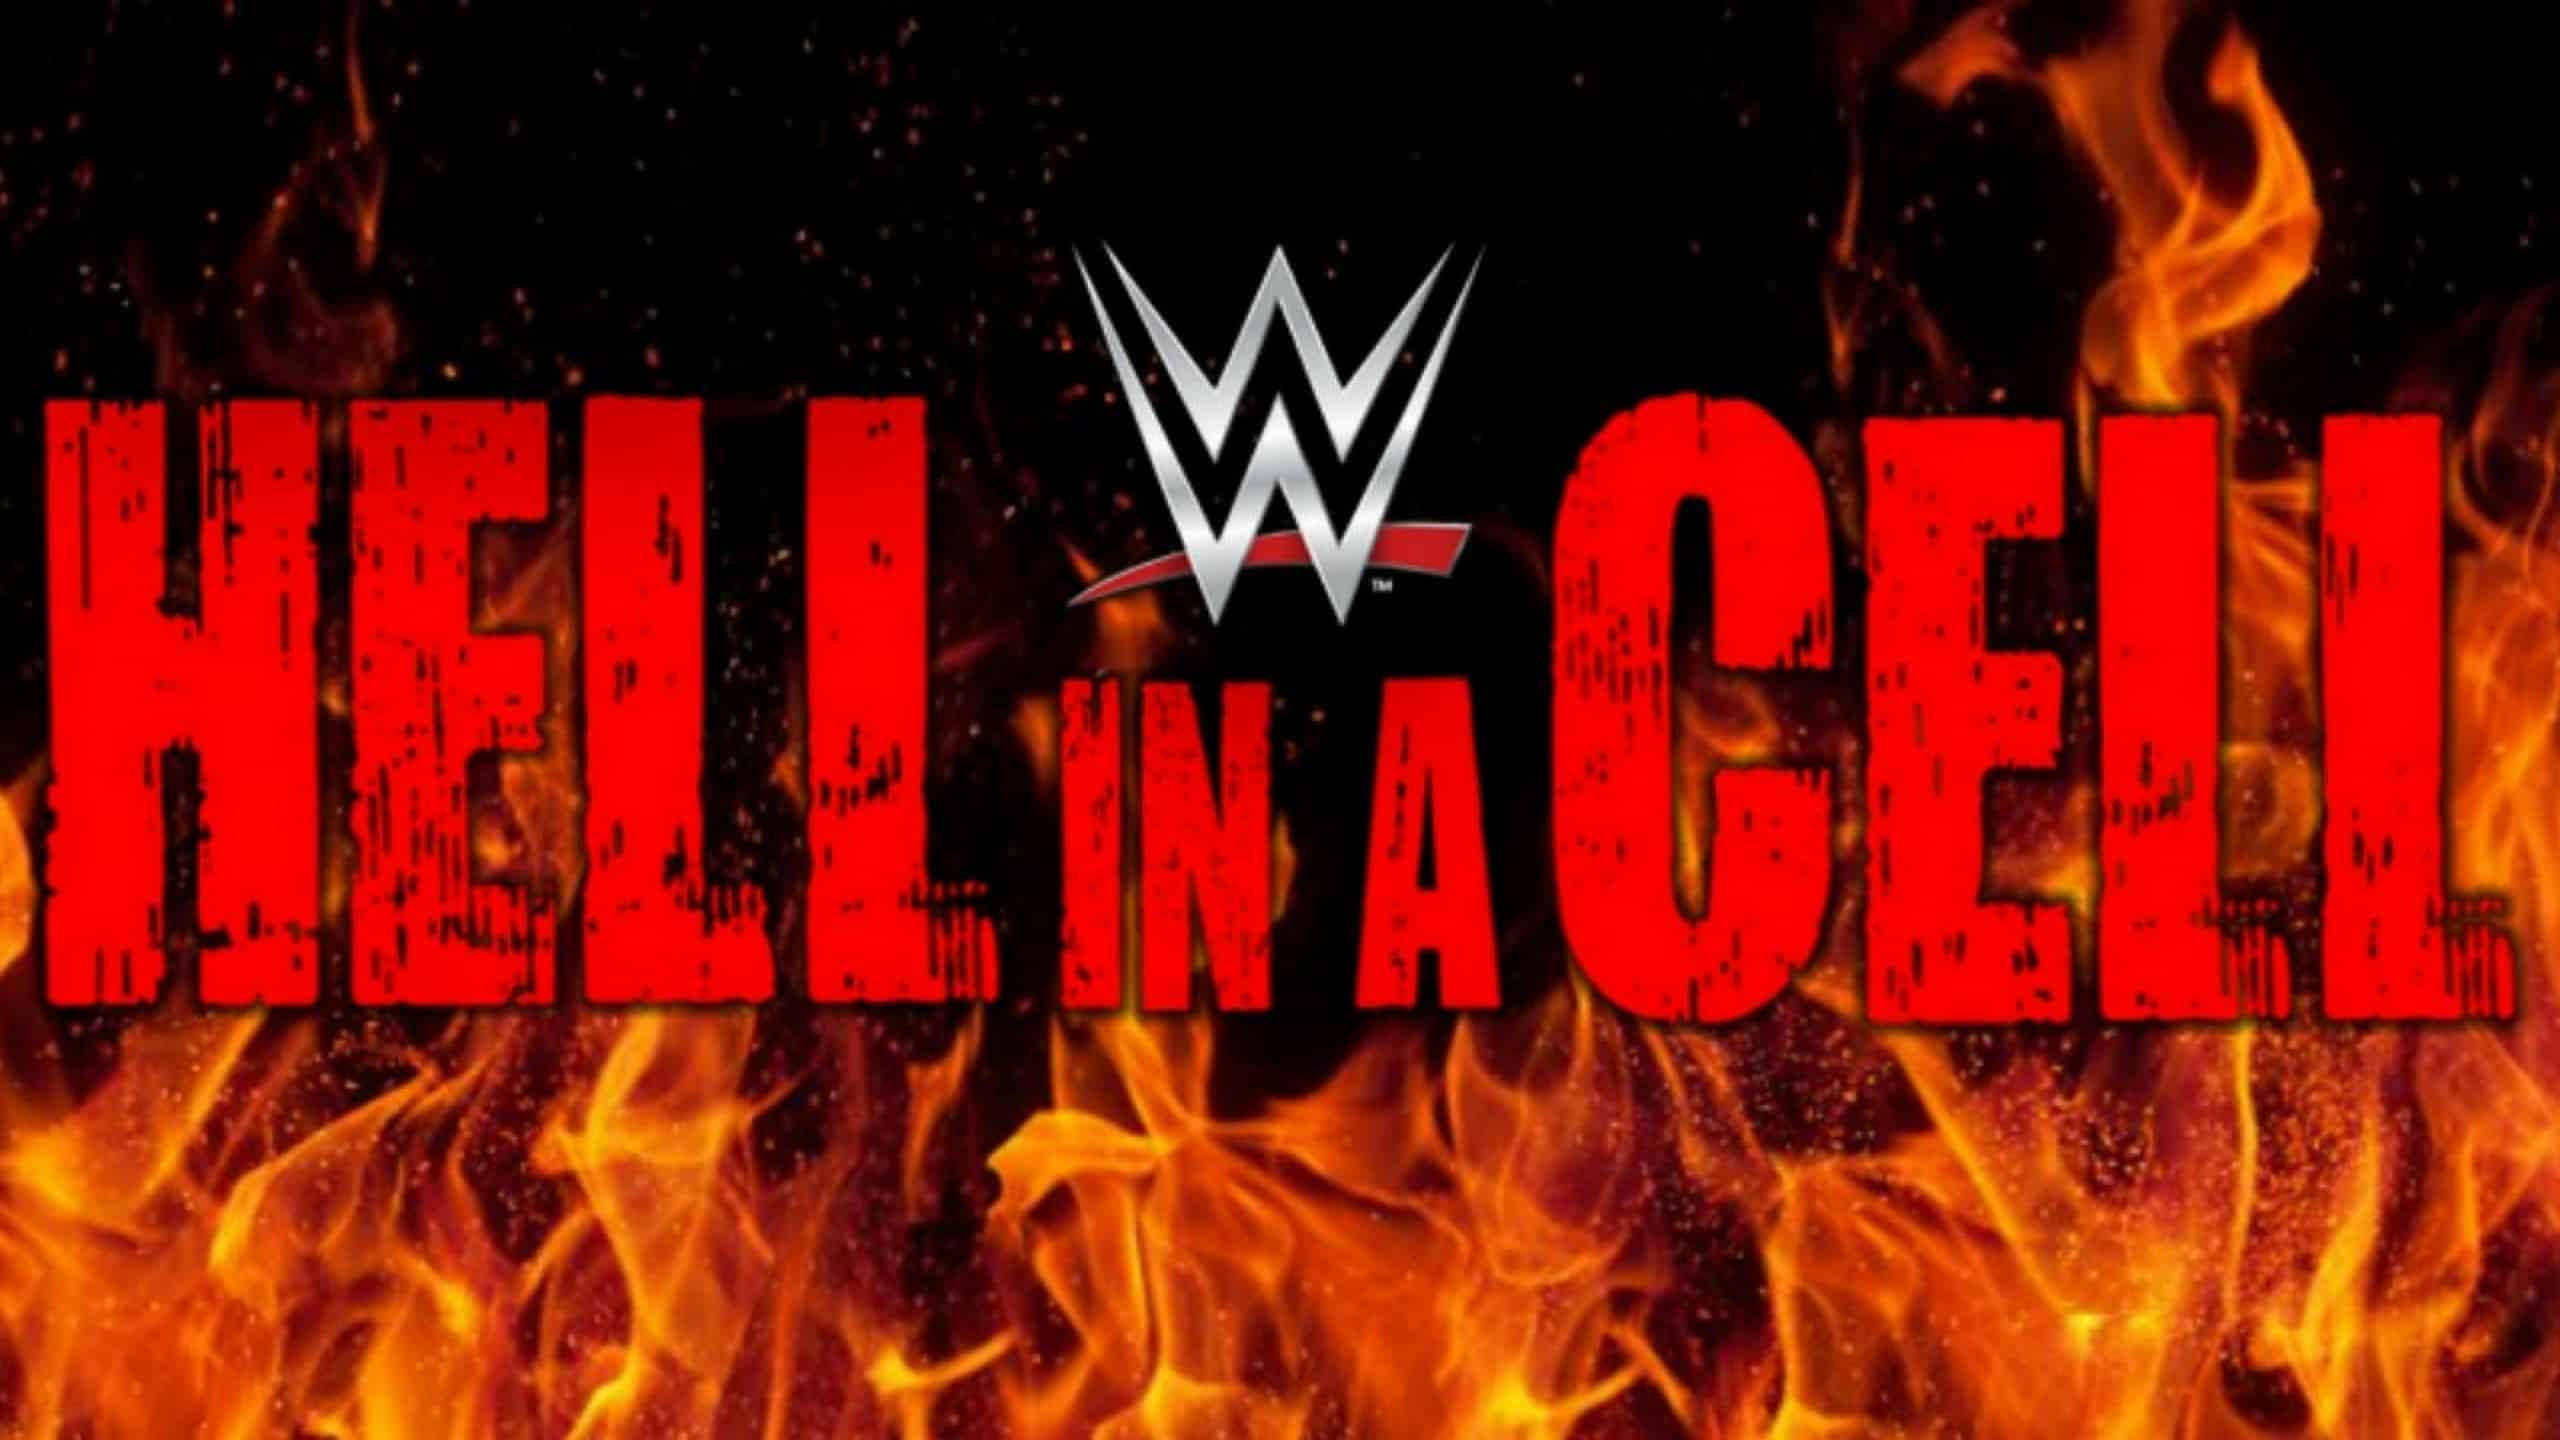 WWE Hell In A Cell 2017 - TheGuyBlog.com